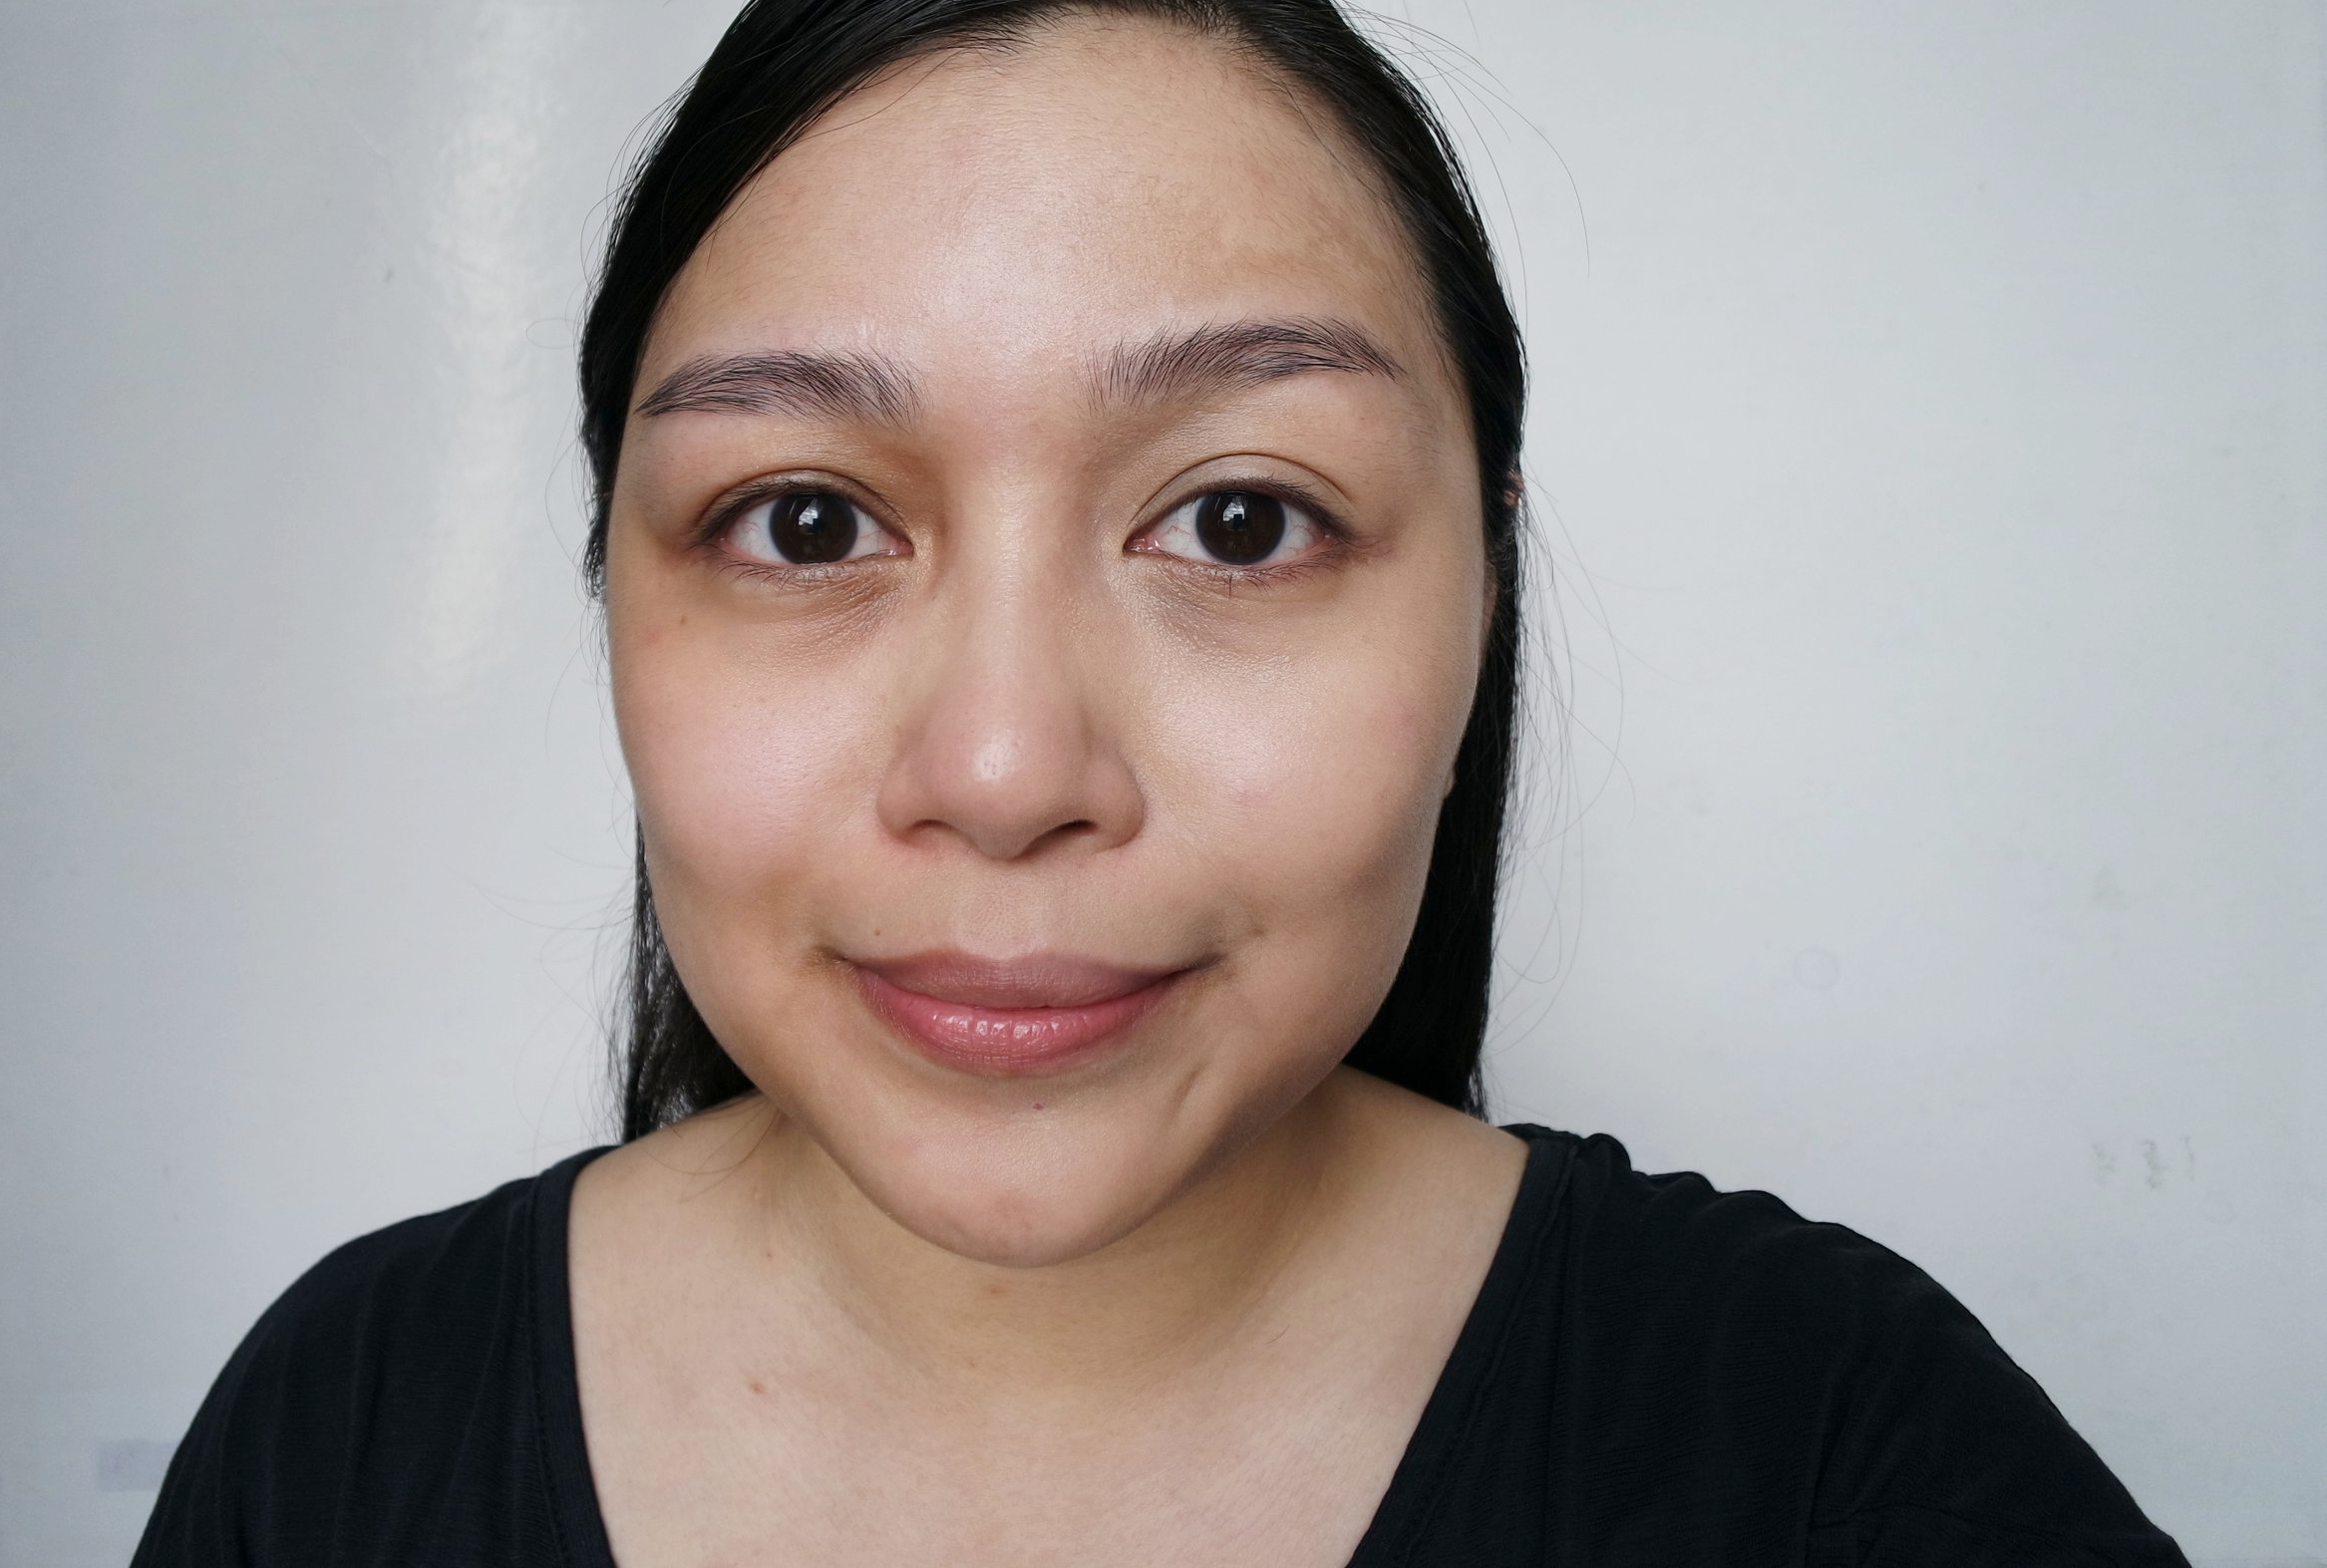 Wearing foundation only on the right side! That part of my face looks much brighter and lifted, without the obvious appearance of makeup.